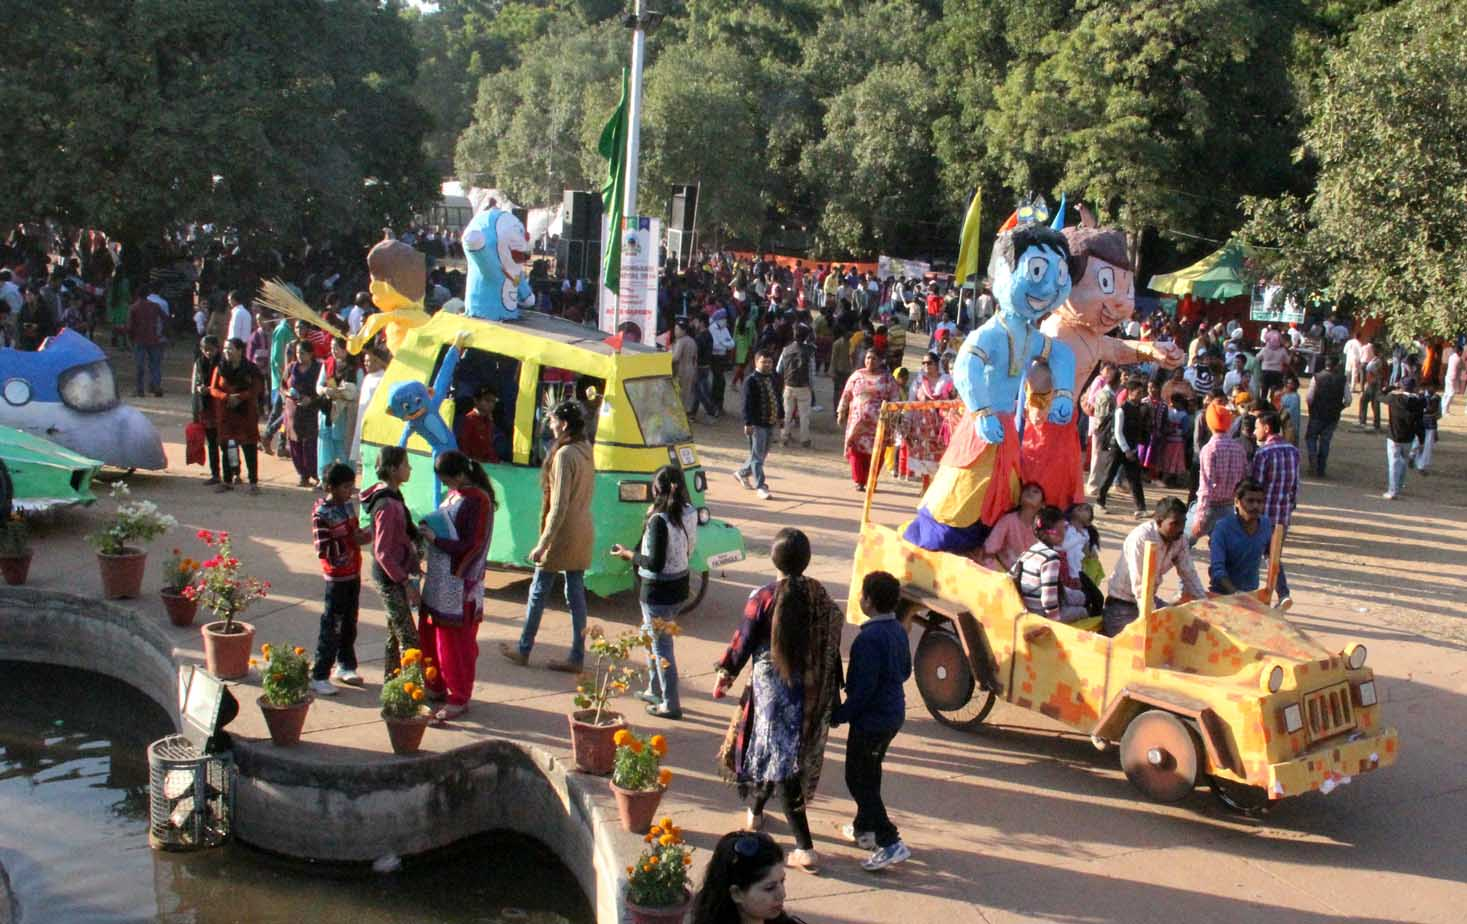 A view of Chandigarh Carnival-2014 at Leisure Valley, Sector-10, Chandigarh on Sunday, November 30, 2014.